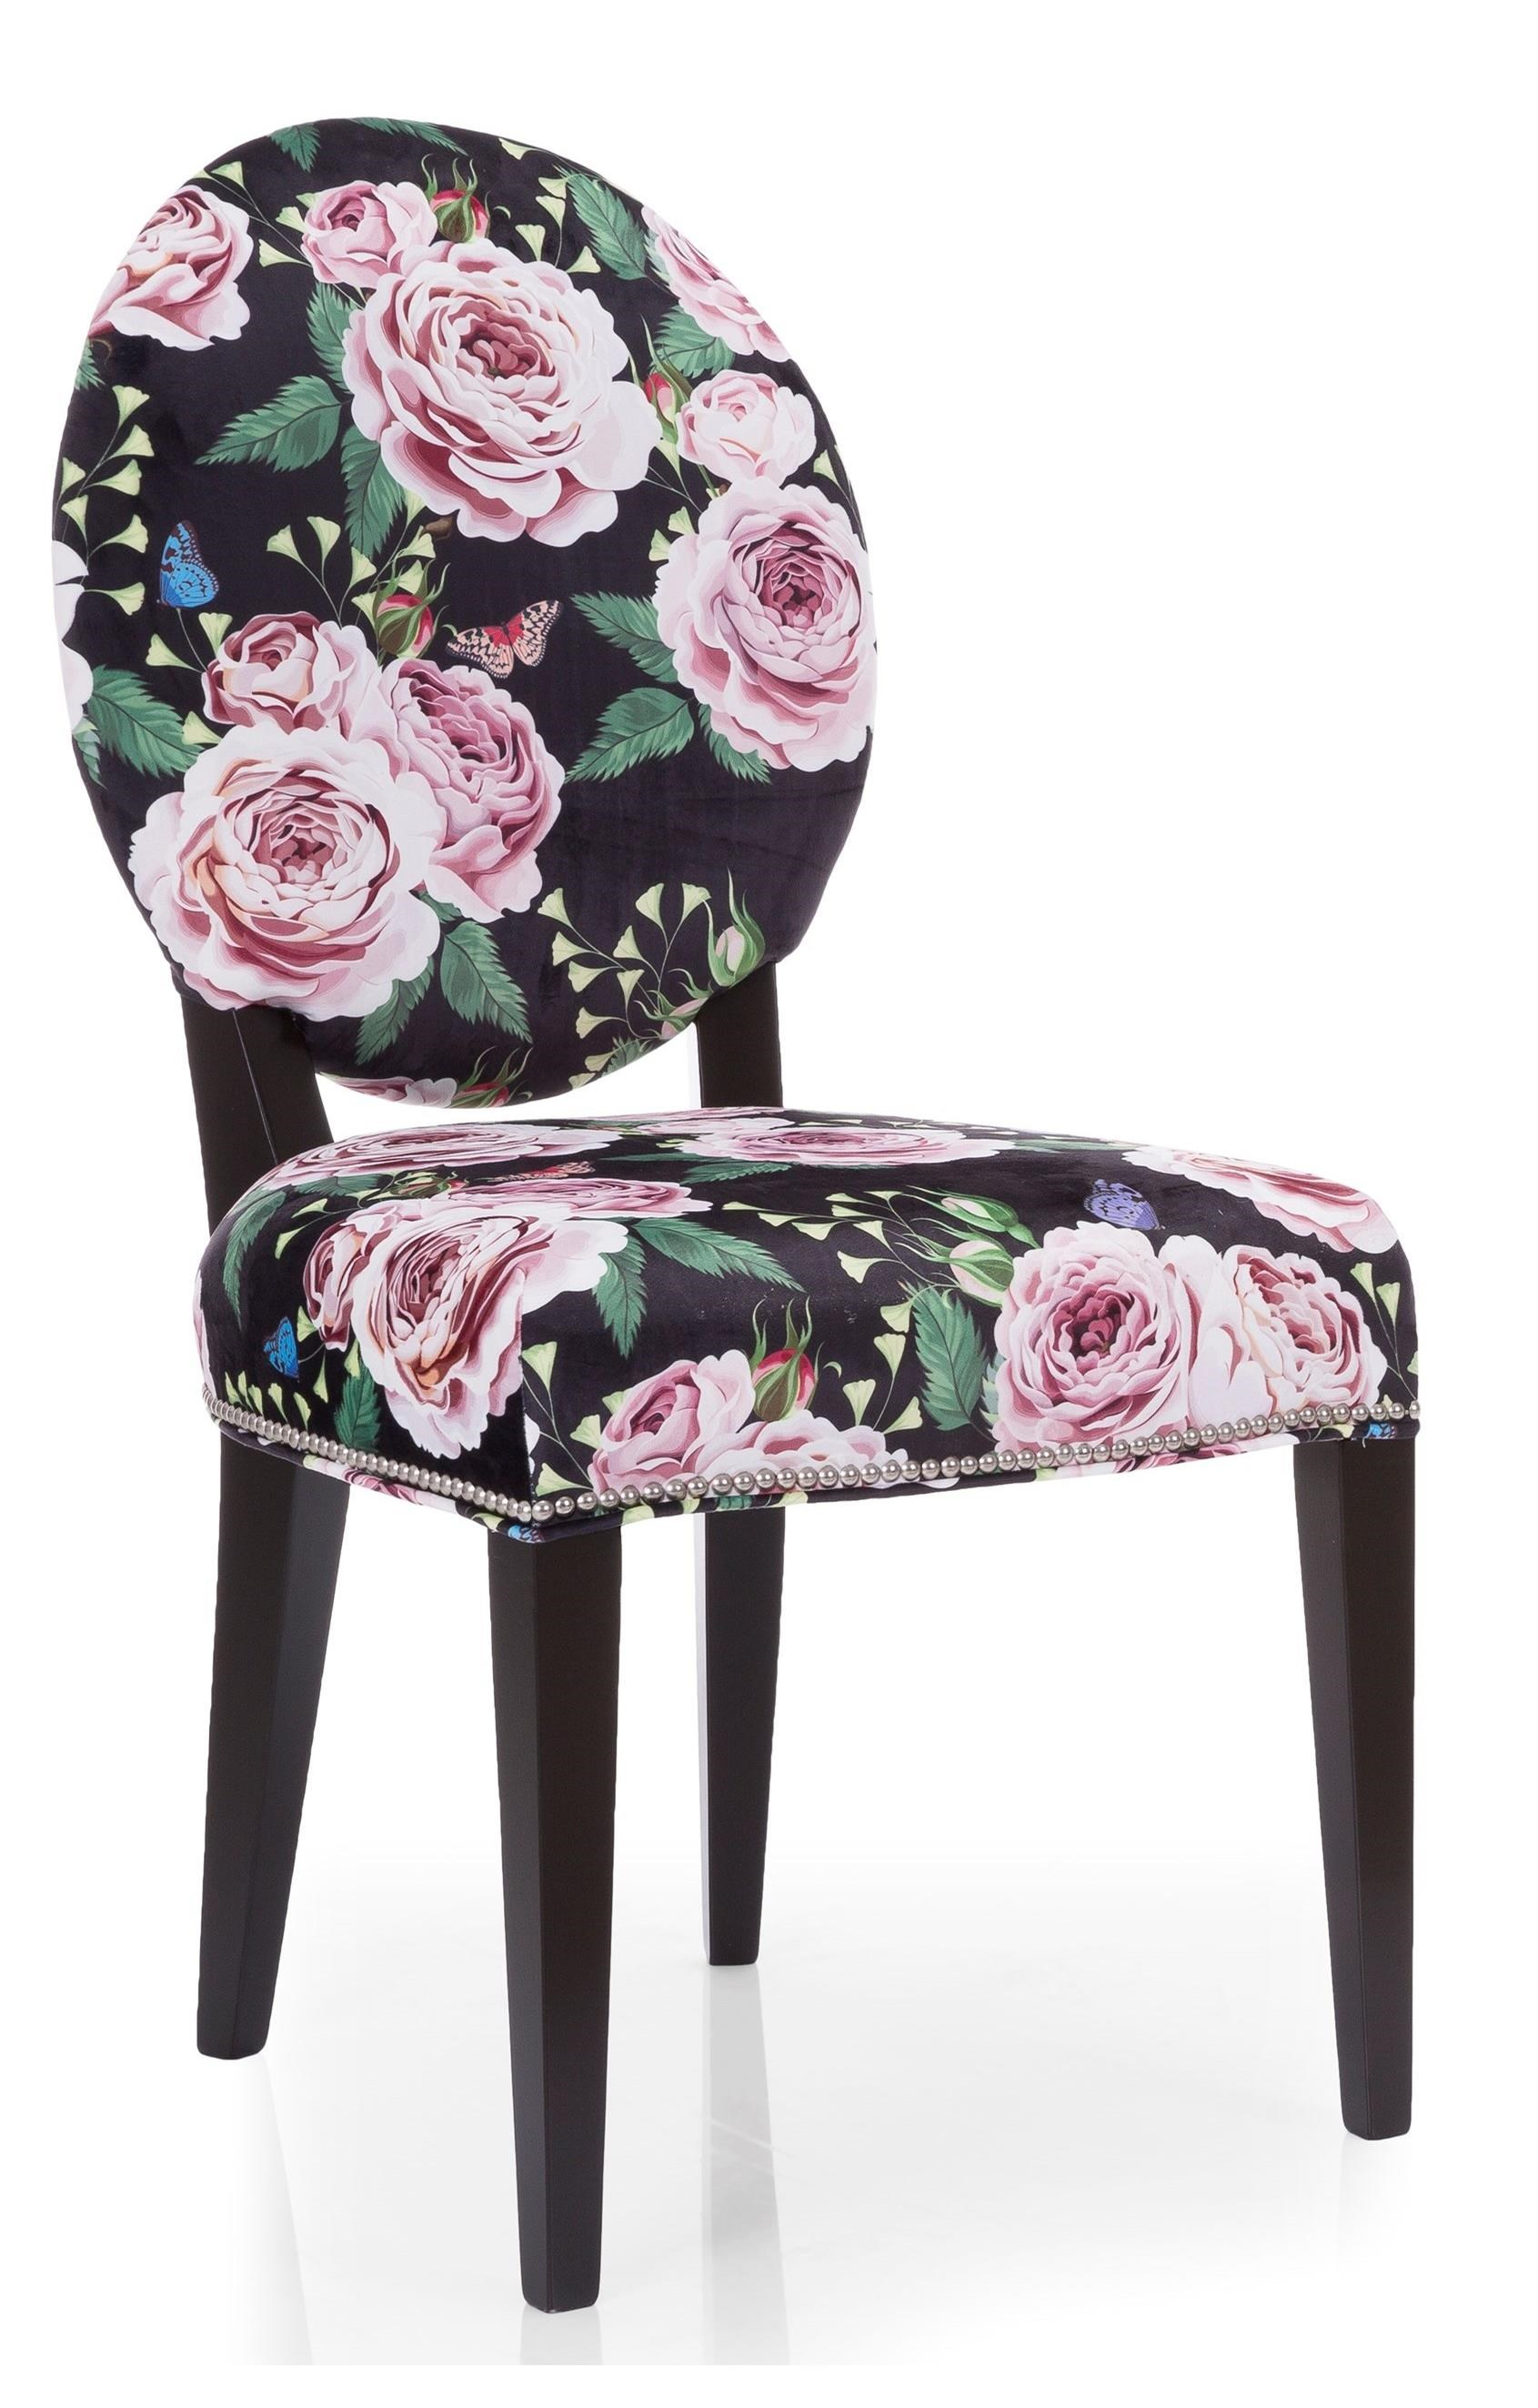 2621 Dining Side Chair by Decor-Rest at Rooms for Less